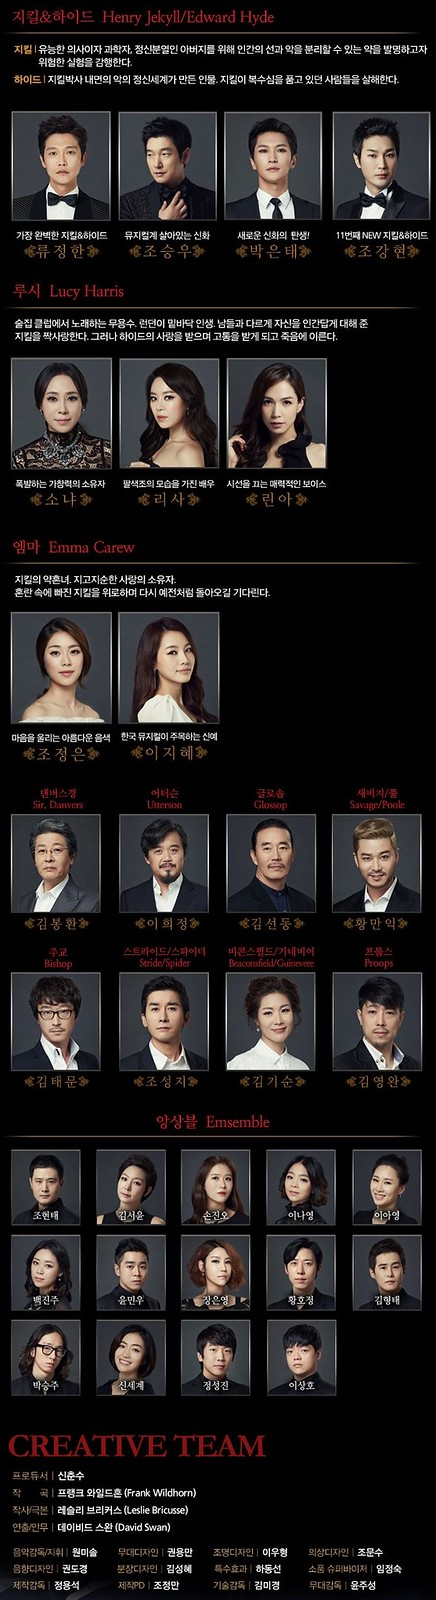 Musical Jekyll and Hyde, Korean Cast 2014